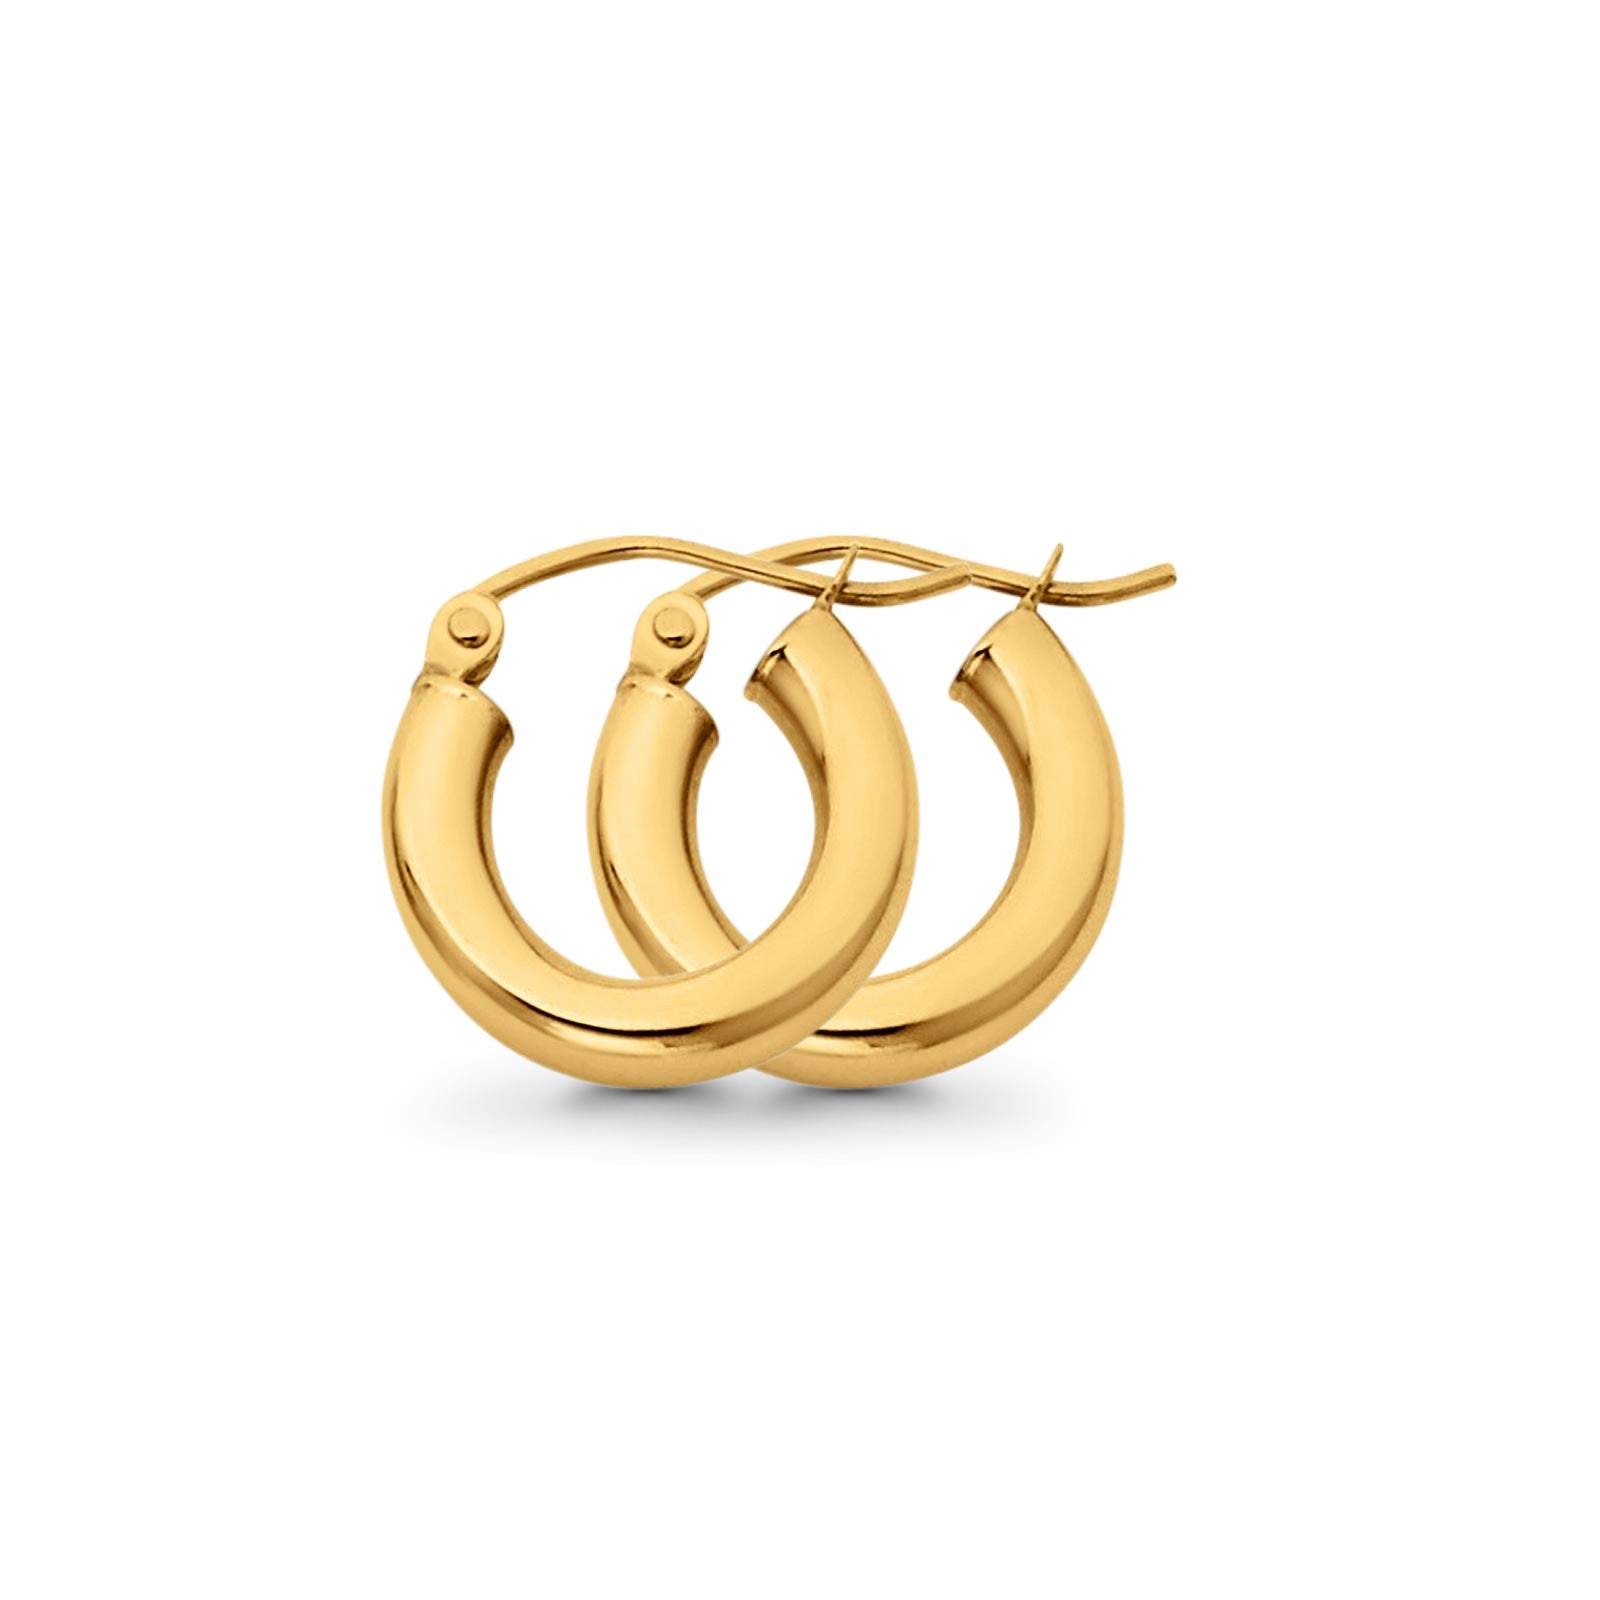 Real Stylish Yellow Gold Plain 3mm Snap Closure Hoop Earrings Hinged 1gram 14mm 14K